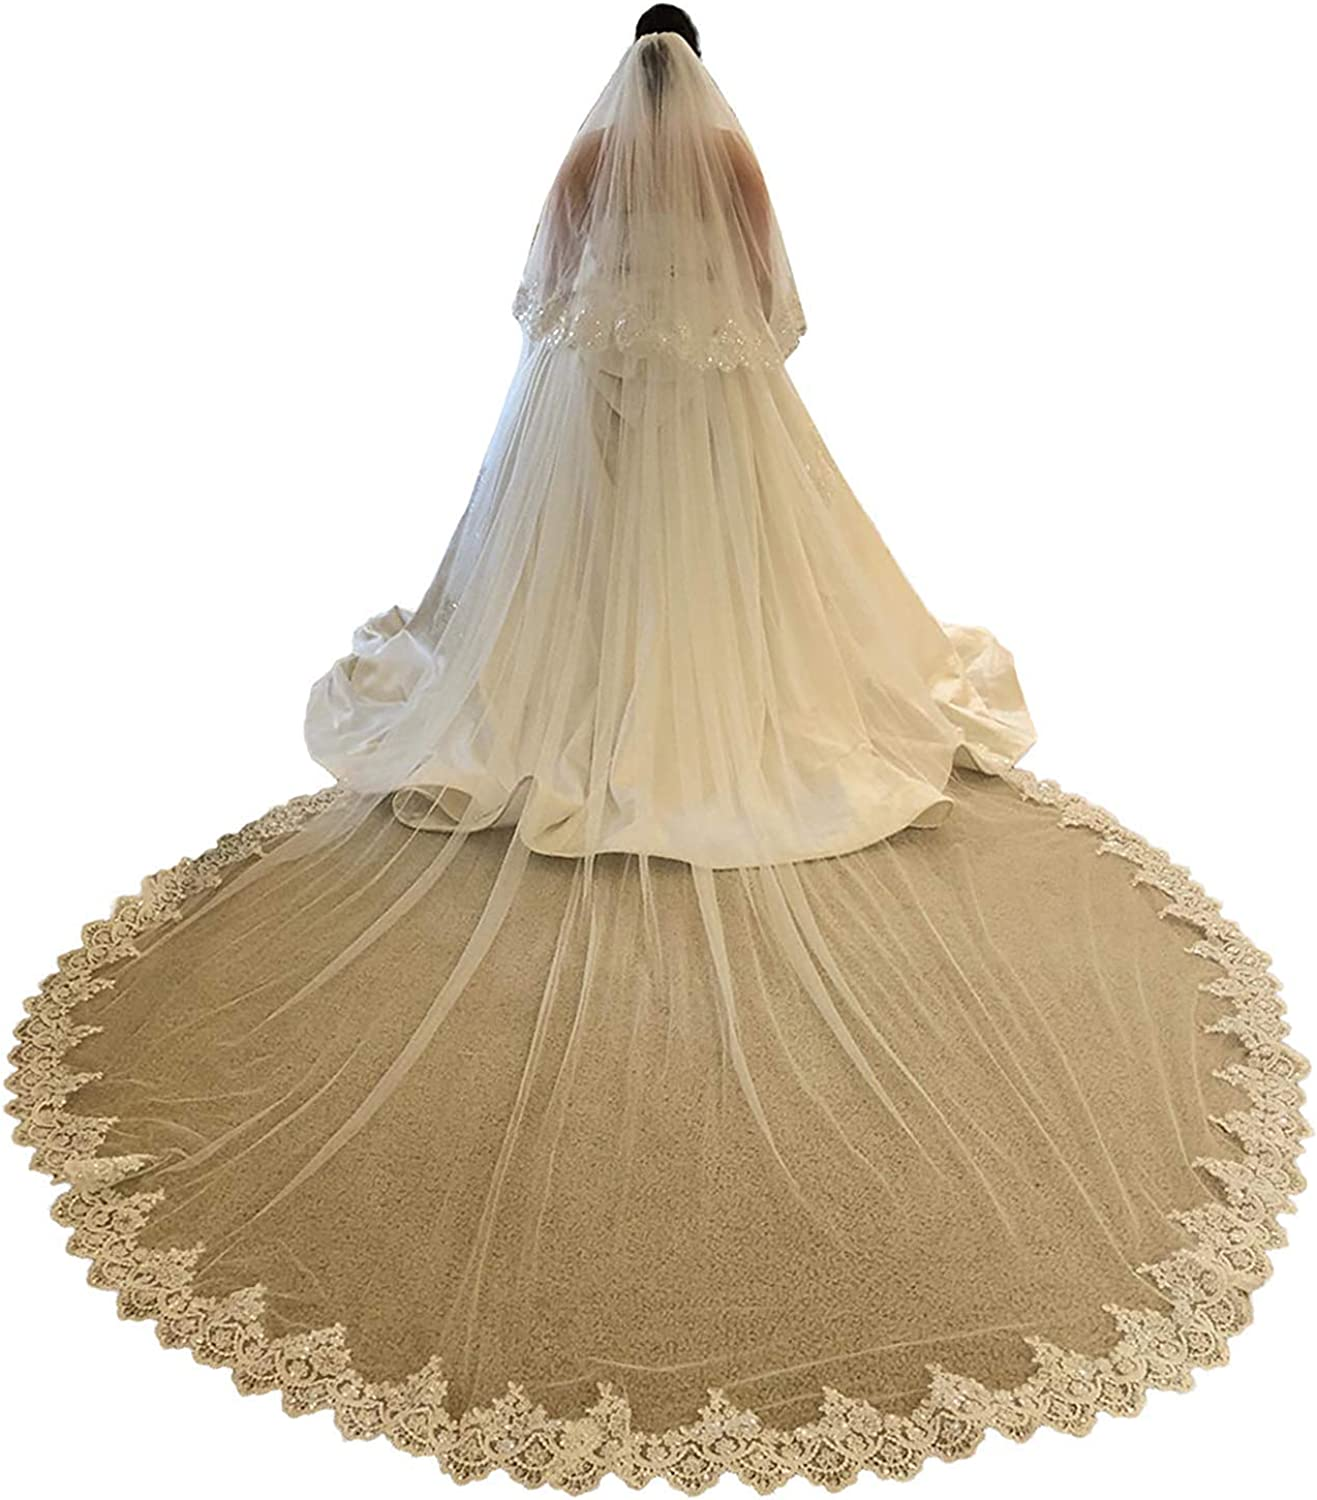 EllieHouse 2 Tier Long Sequin Lace Wedding Bridal Veil With Comb S77